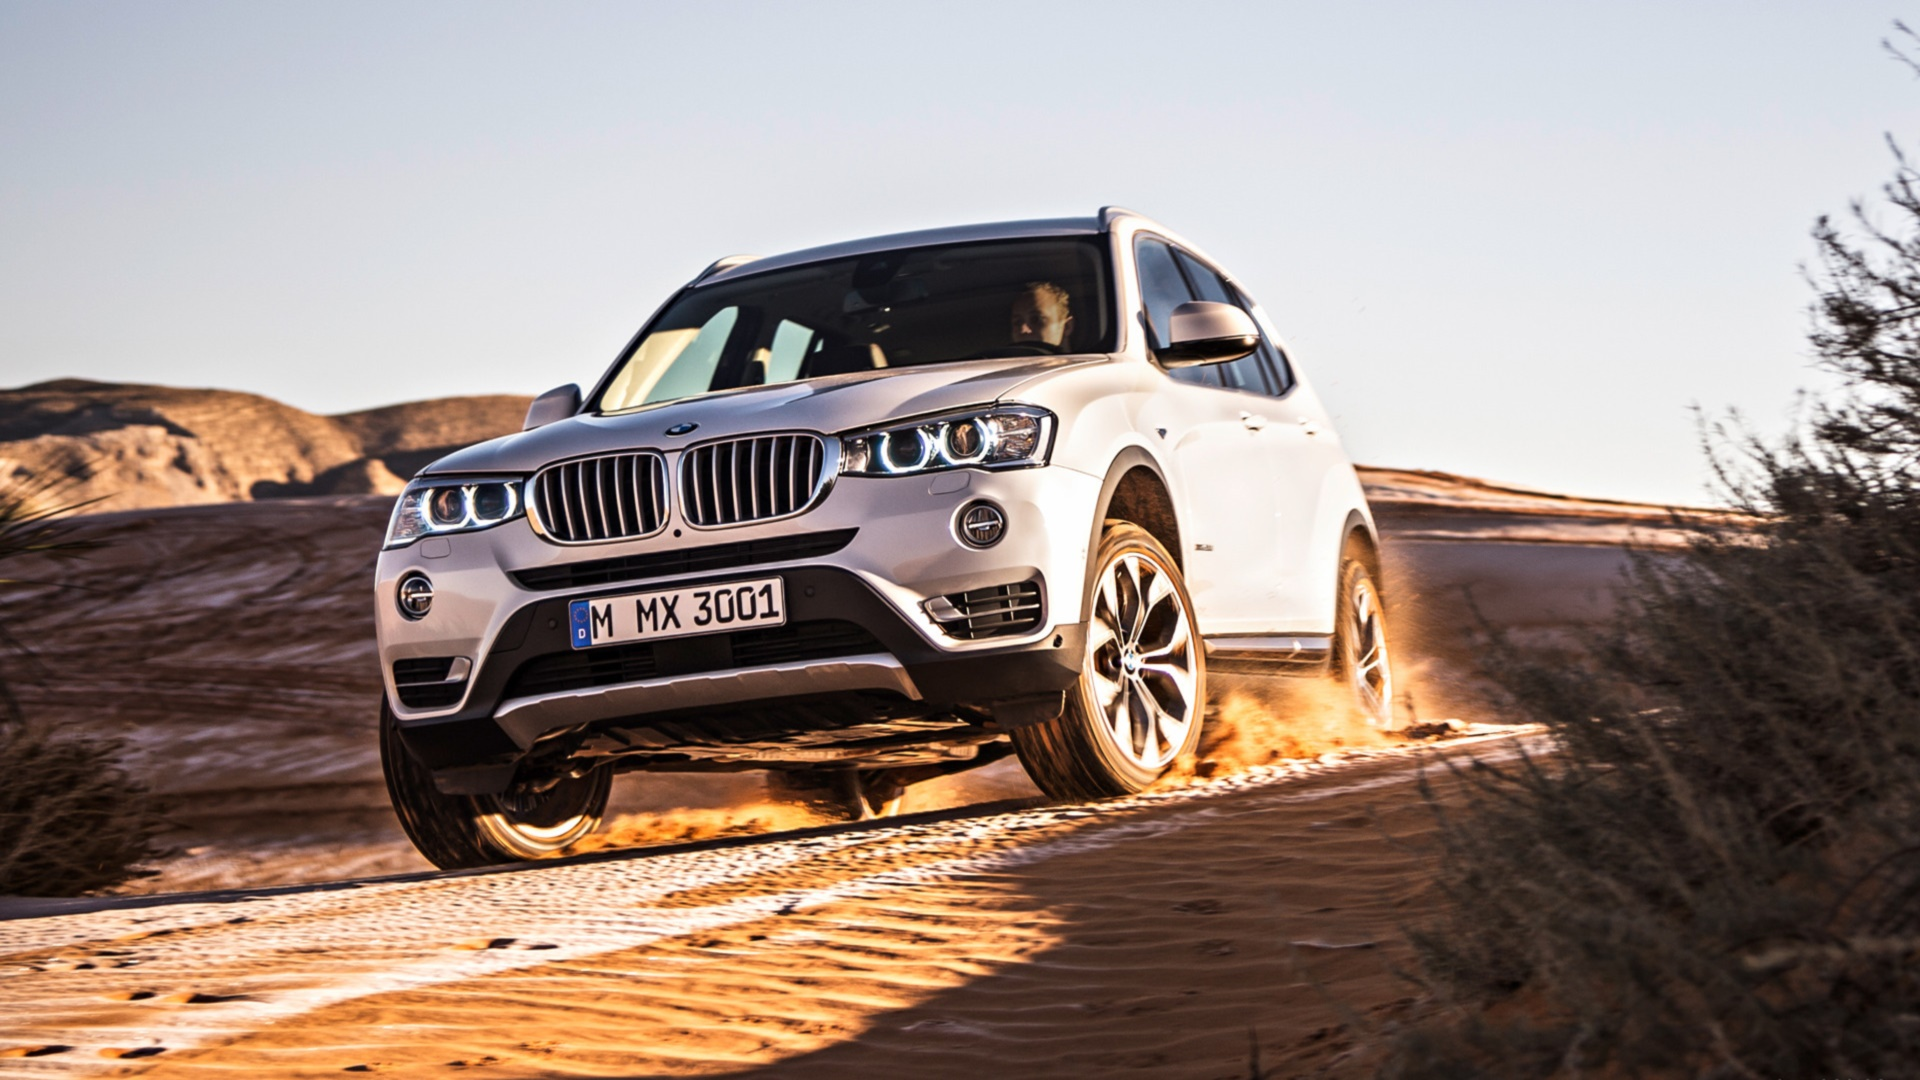 Wallpaper Abyss Explore the Collection BMW Veicoli 2015 BMW X3 LCI